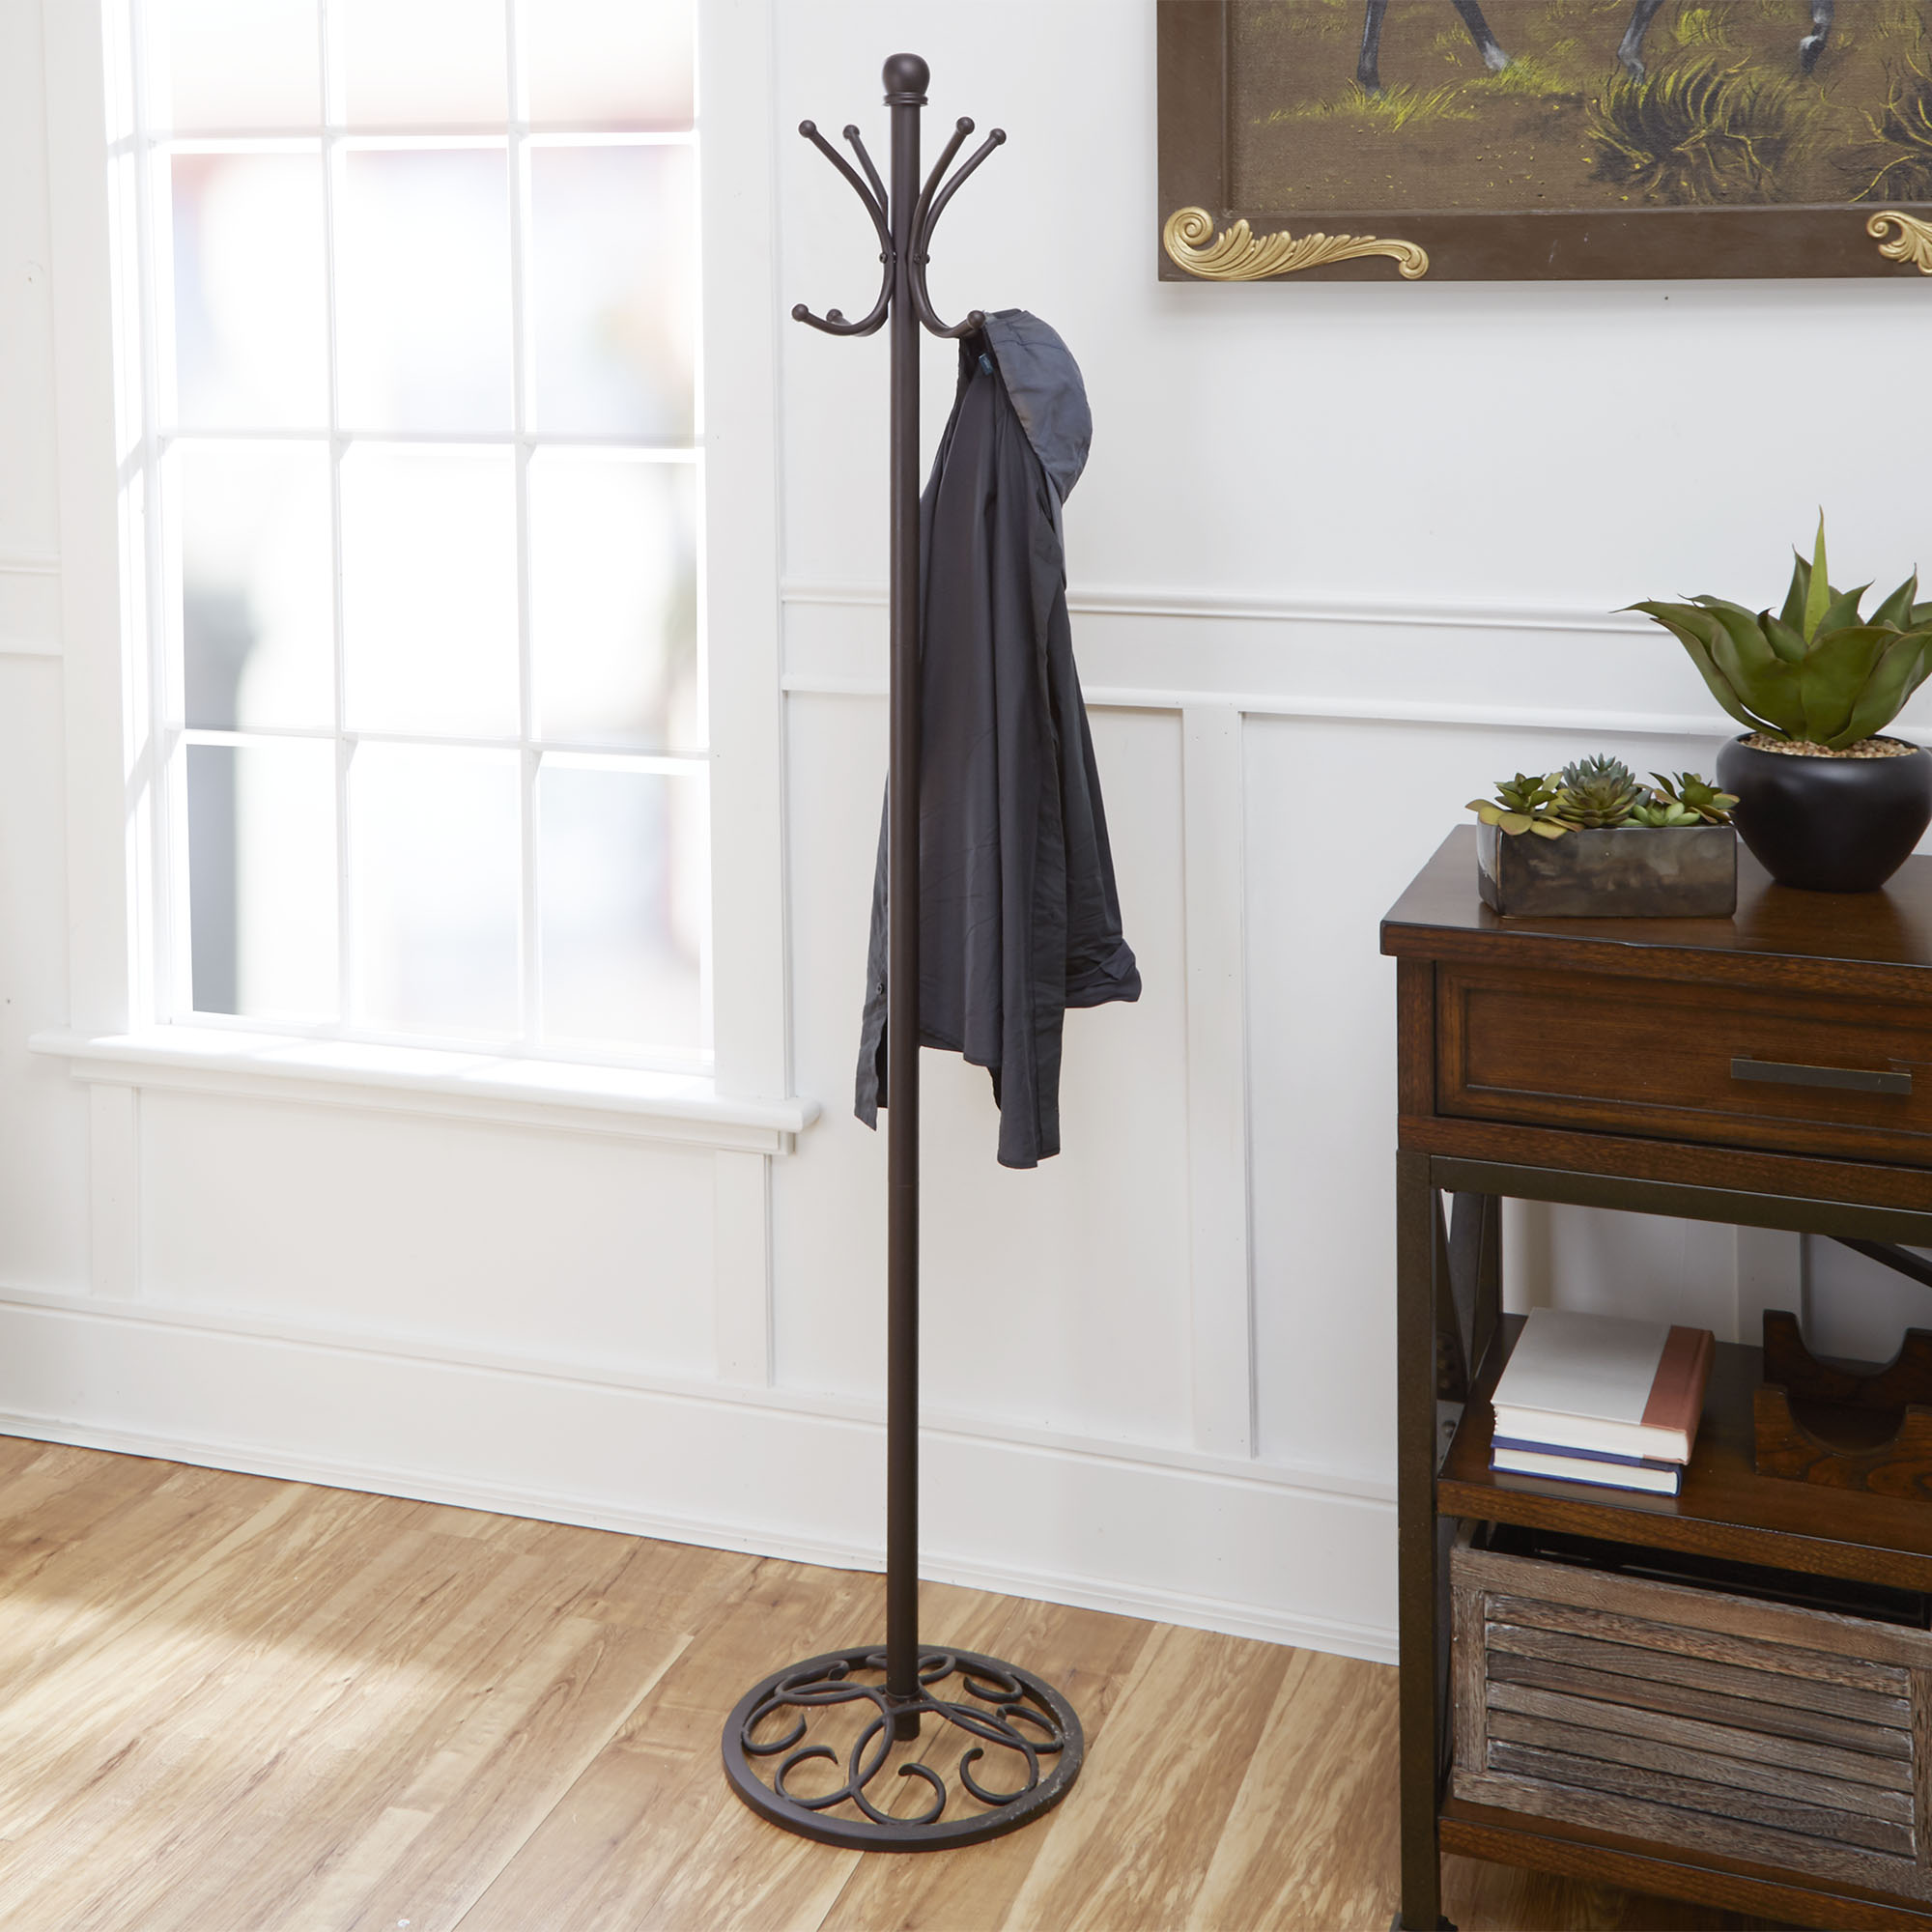 Metal Coat and Hat Storage Rack, Oil-Rubbed Bronze Finish